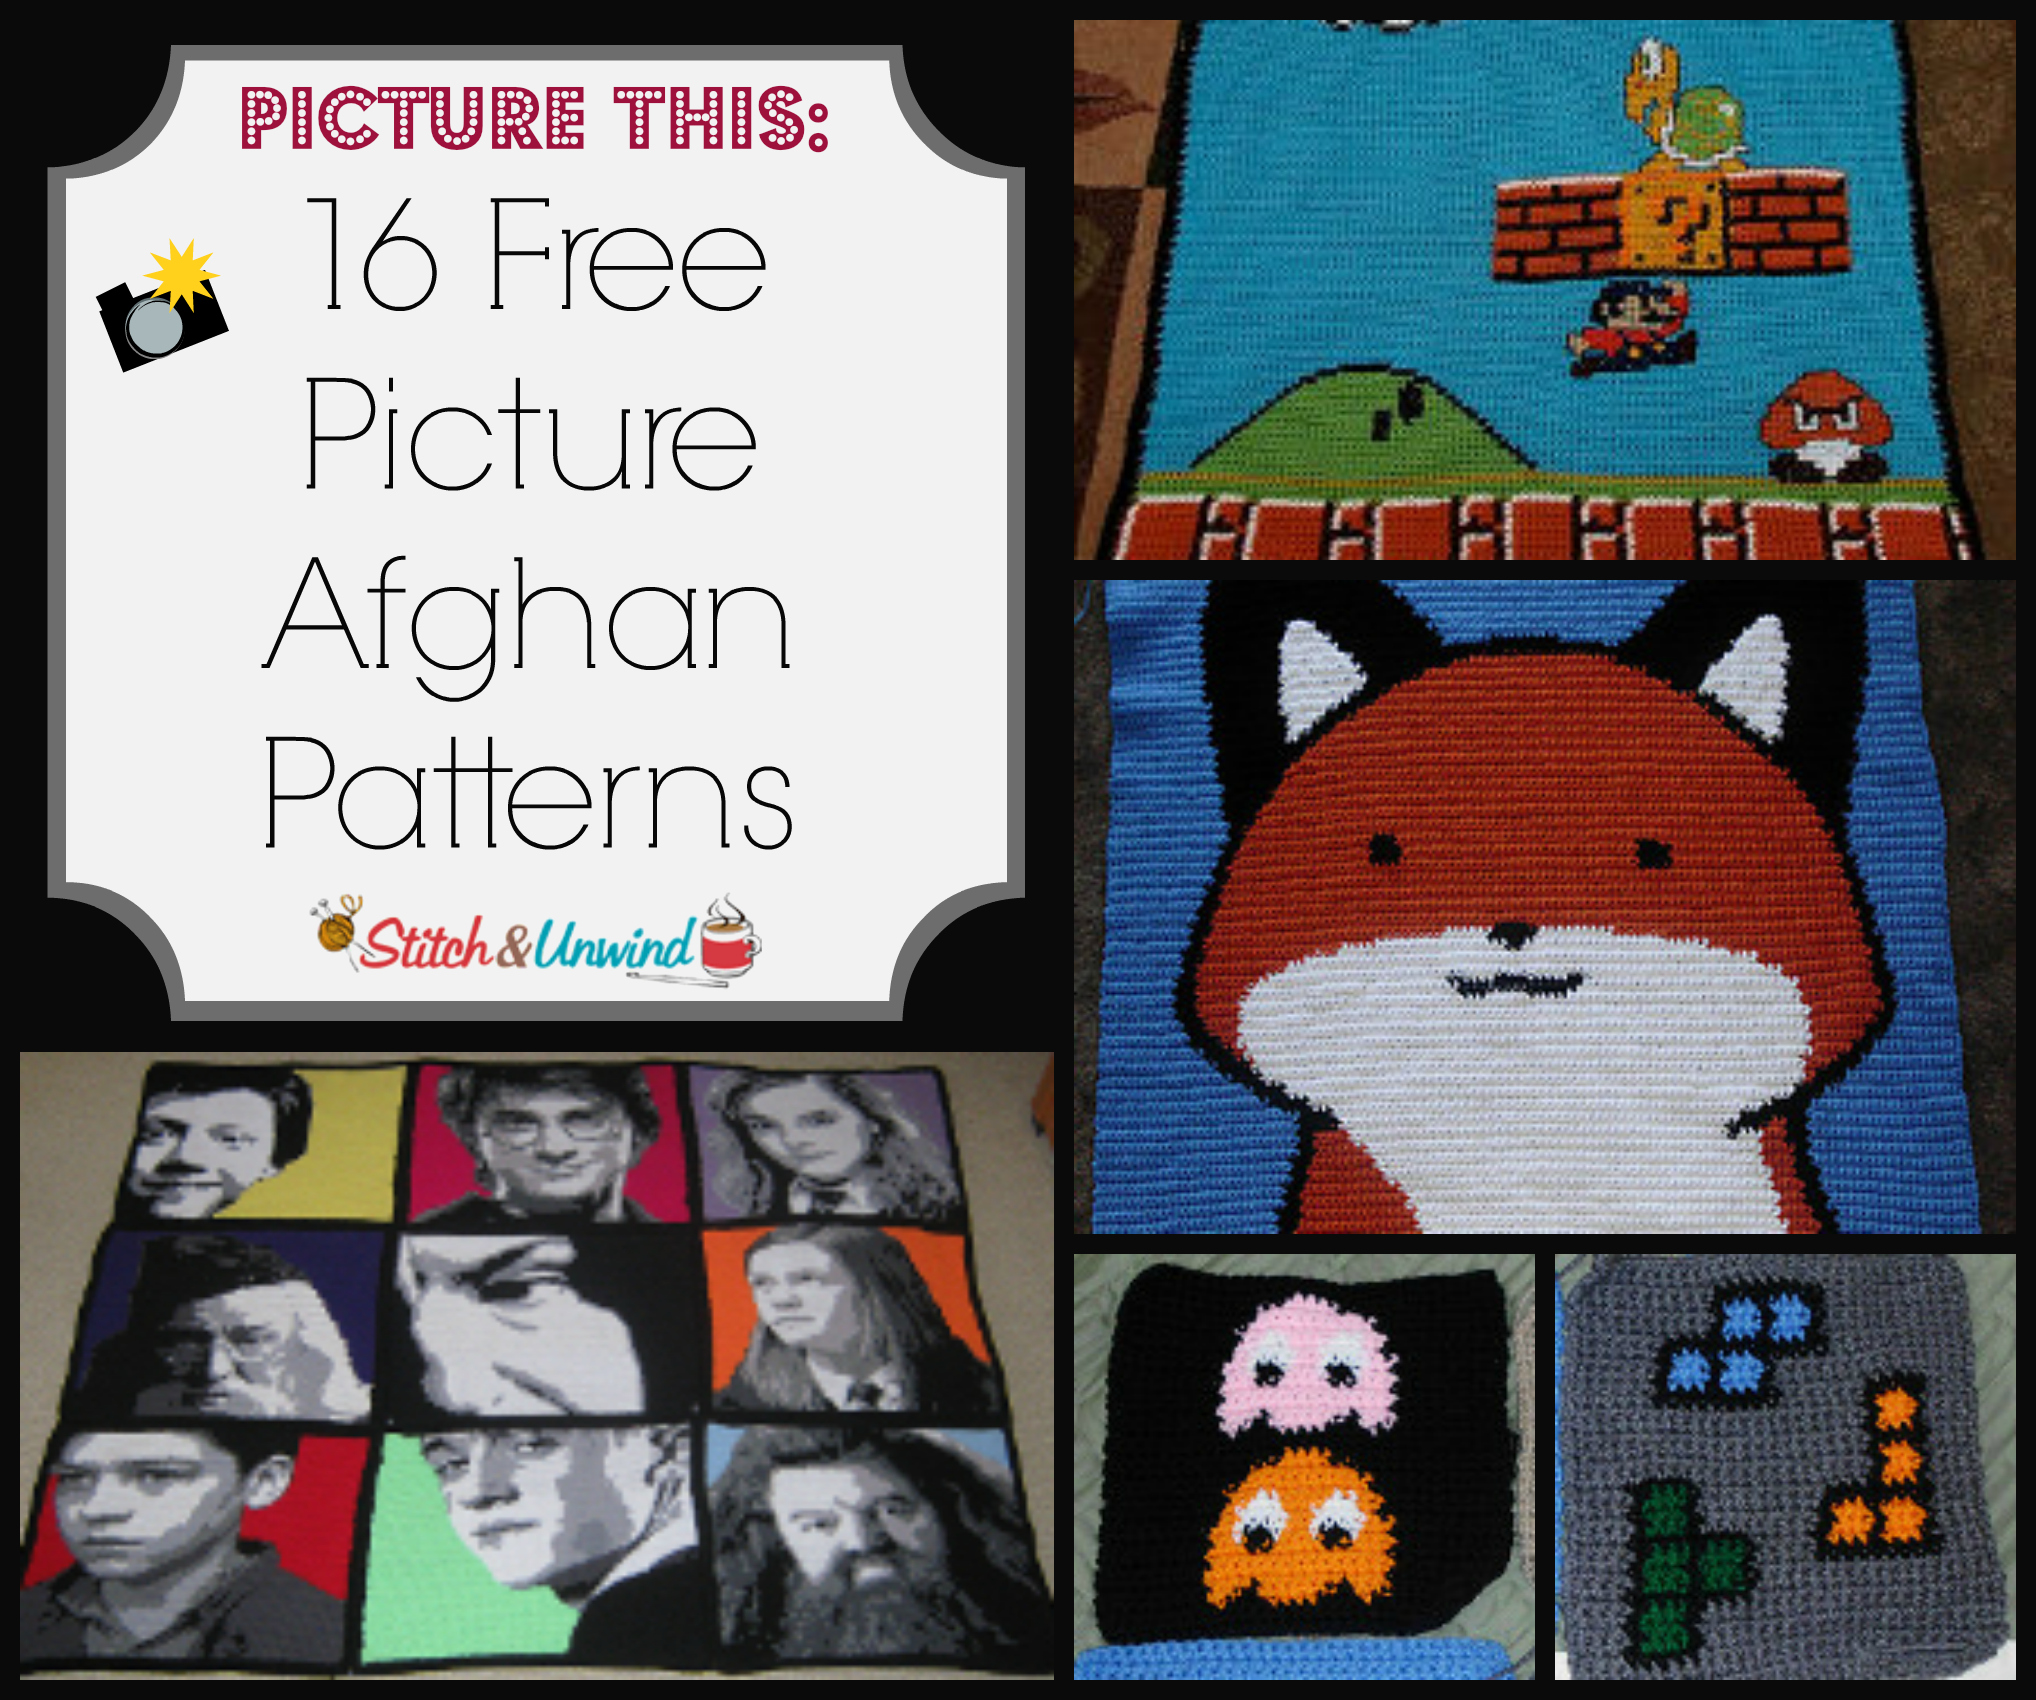 Picture This 16 Free Picture Afghan Patterns Stitch And Unwind